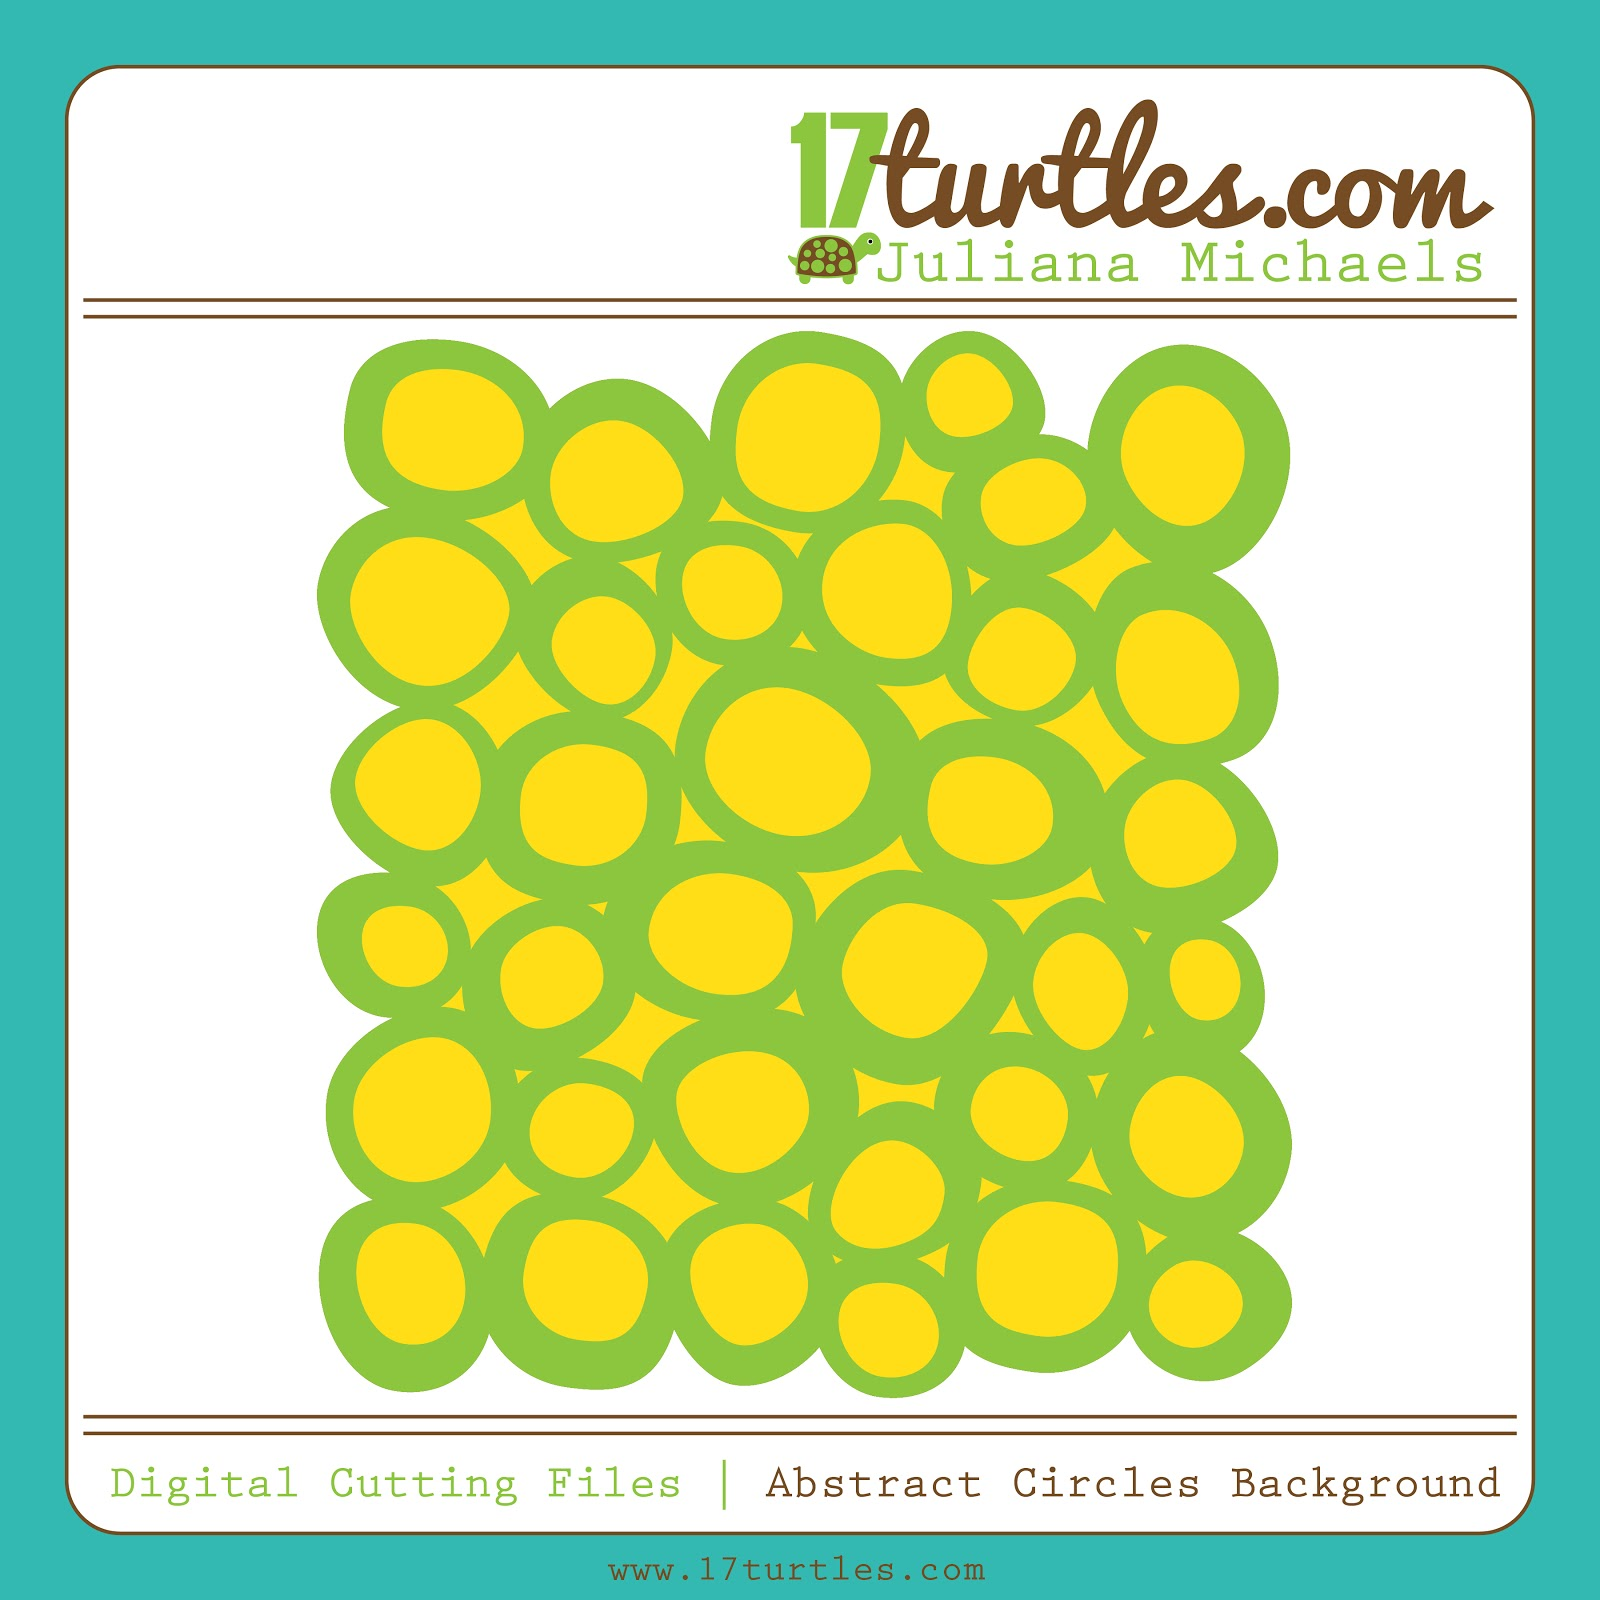 Abstract Circles Background FREE Digital Cut File by Juliana Michaels 17turtles.com